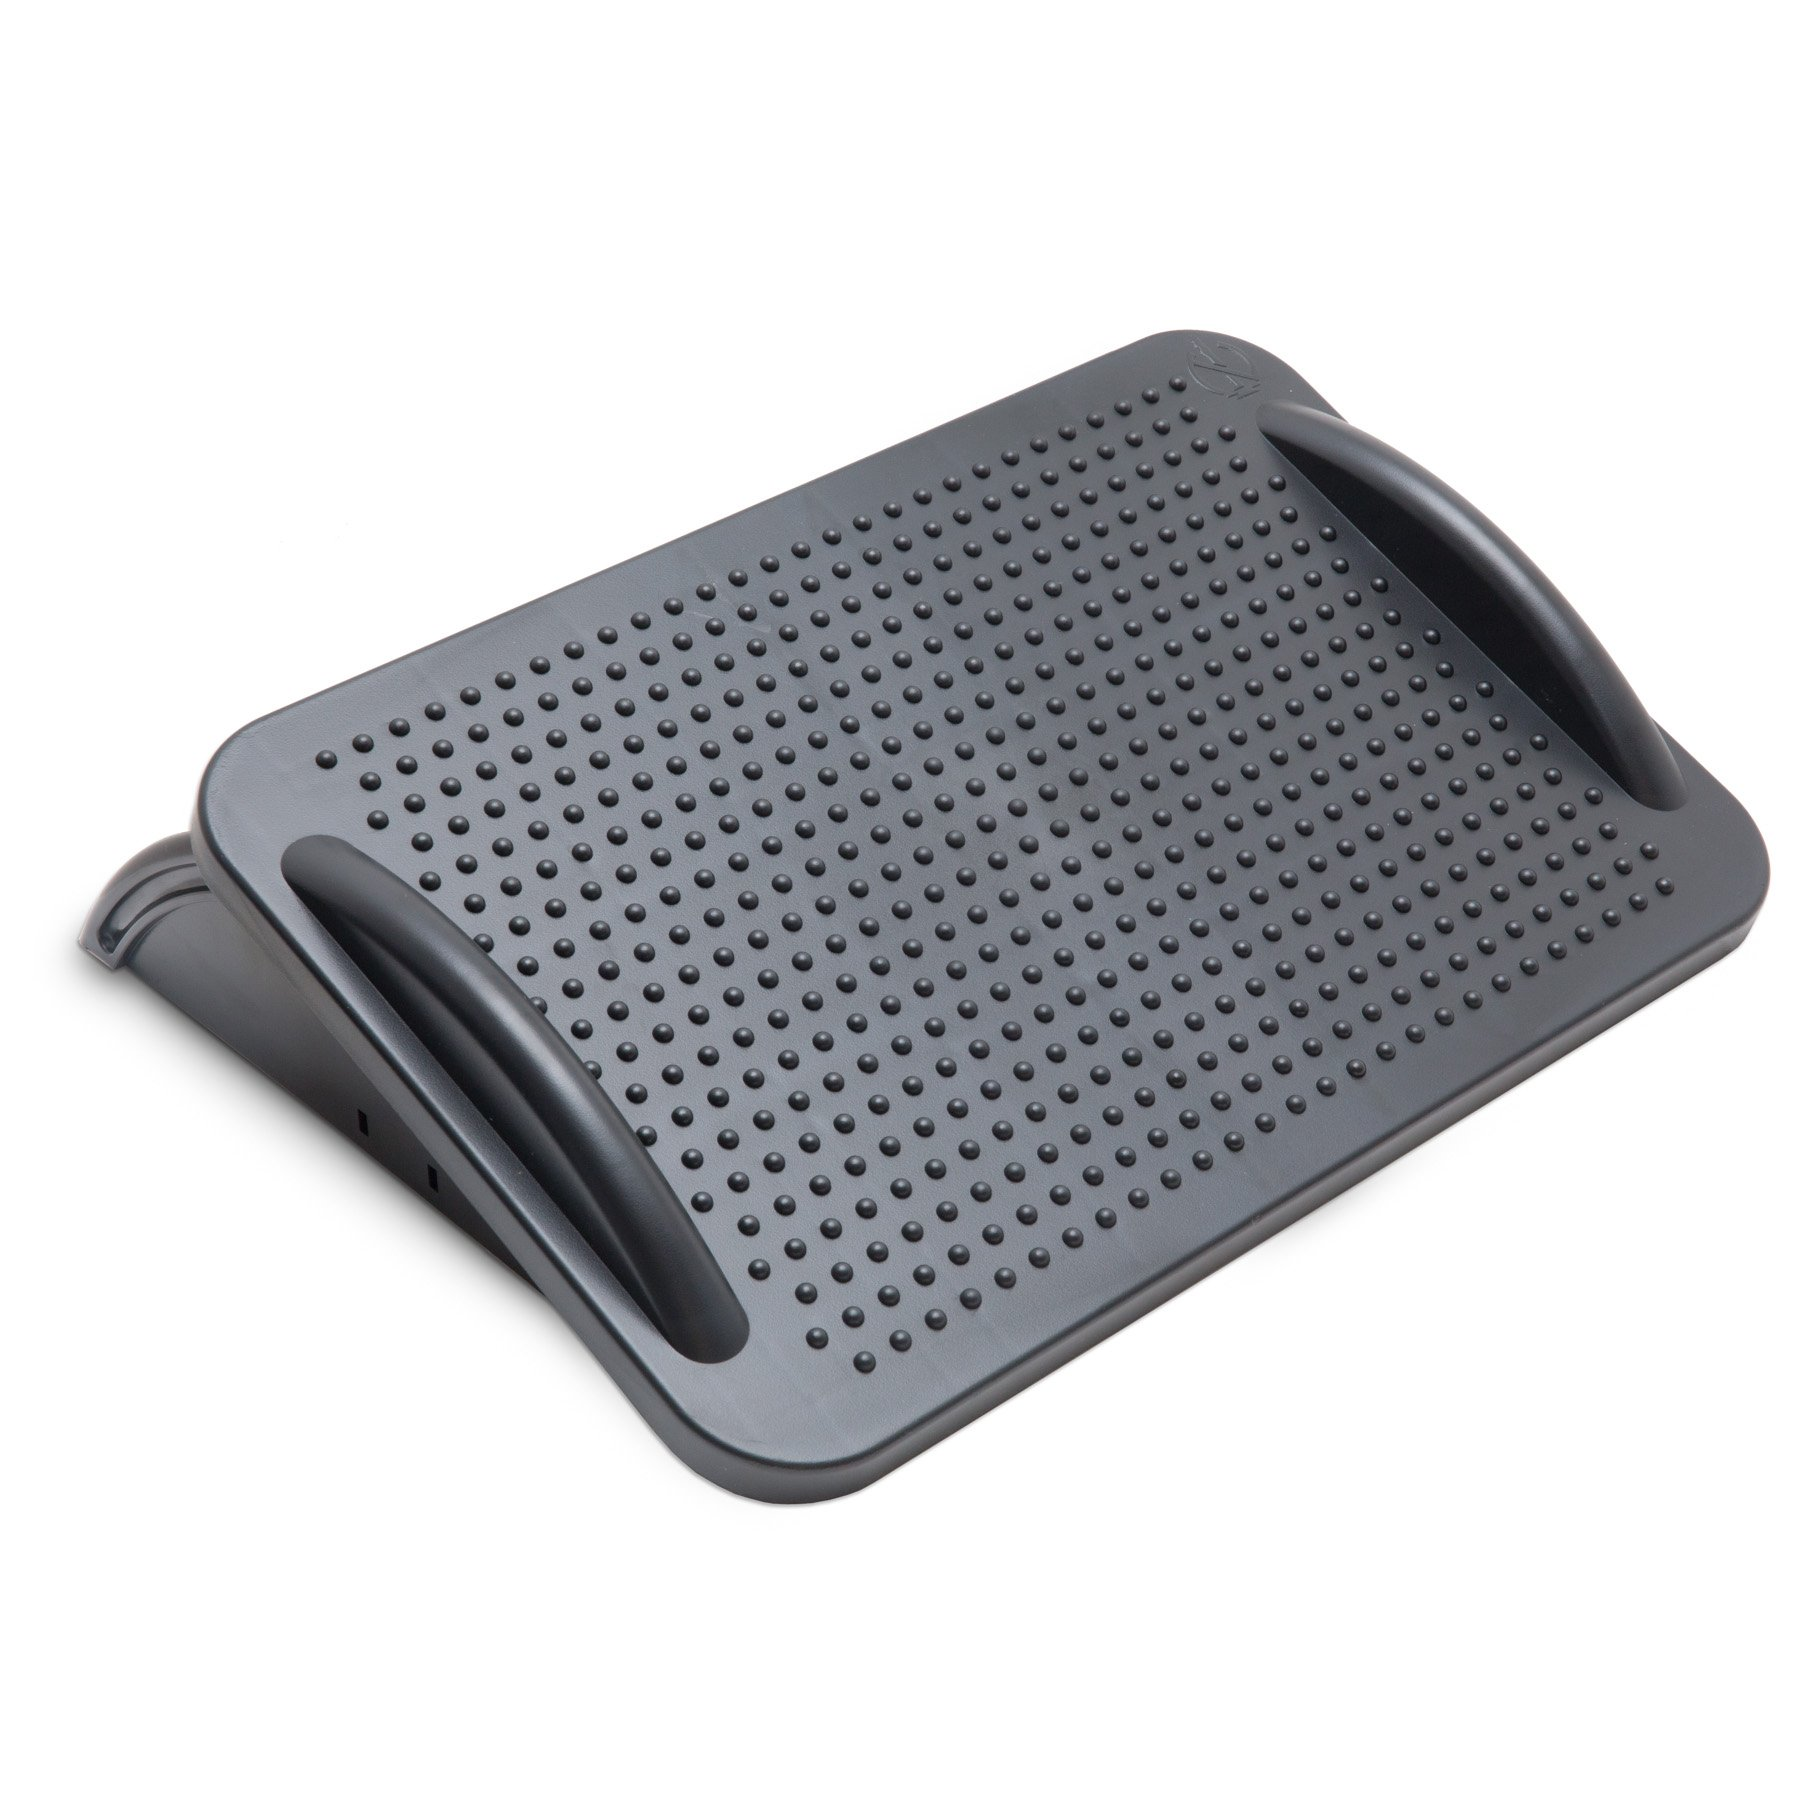 Syba Ergonomic Foot Rest with Massage Function, Adjustable 3 Angle (SY-ACC65068)